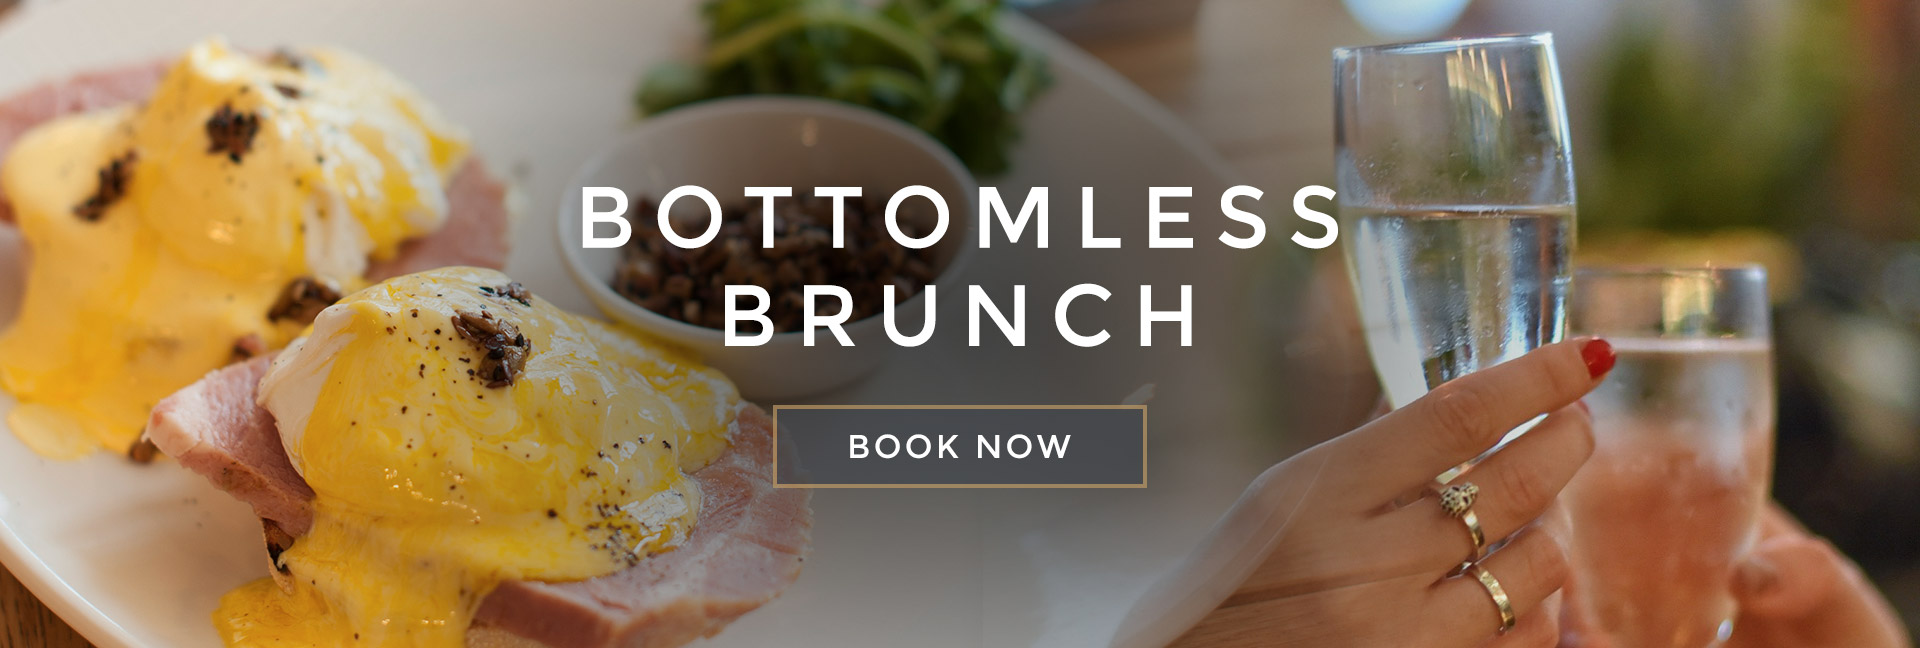 Bottomless Brunch at All Bar One - Book now